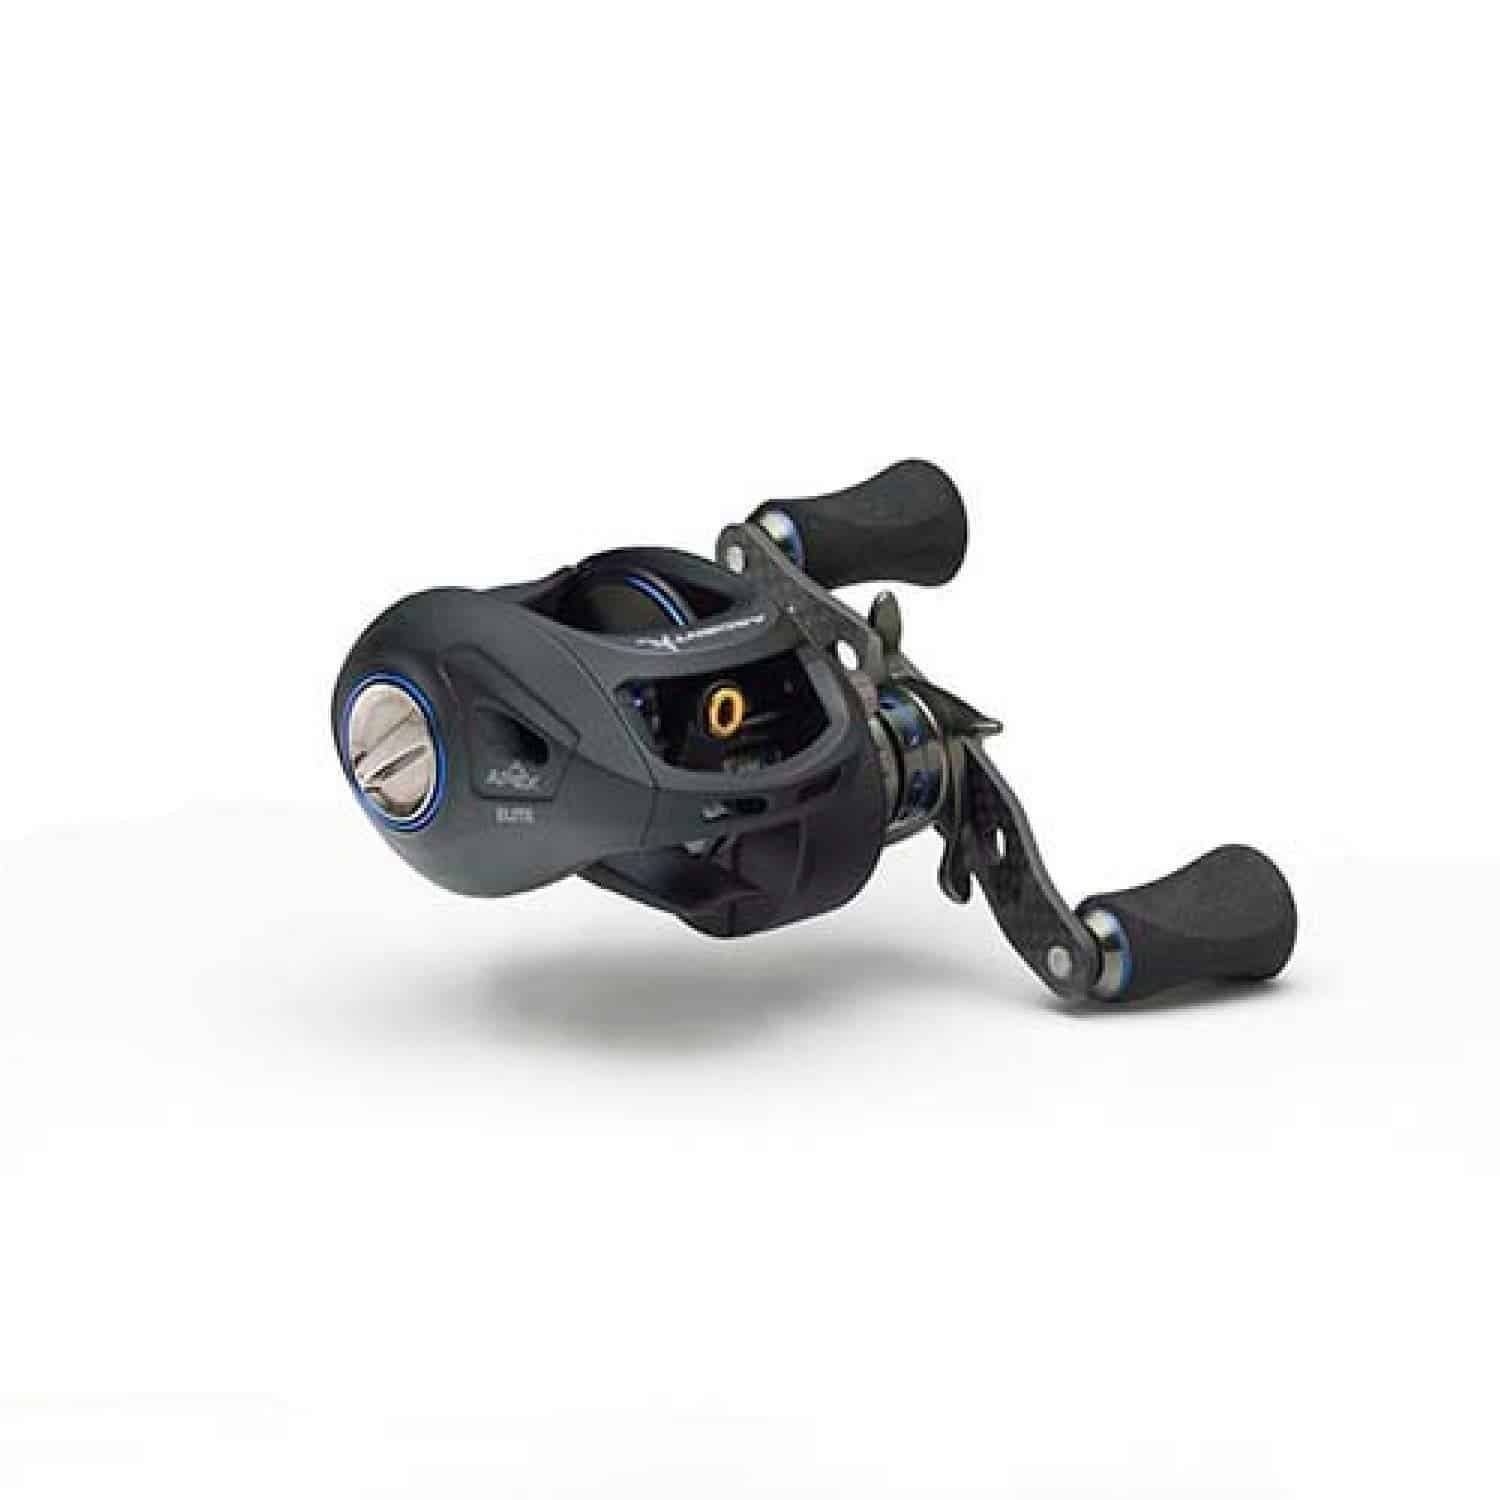 Ardent Apex Elite Fishing Reel 6.5:1 Gear Ratio